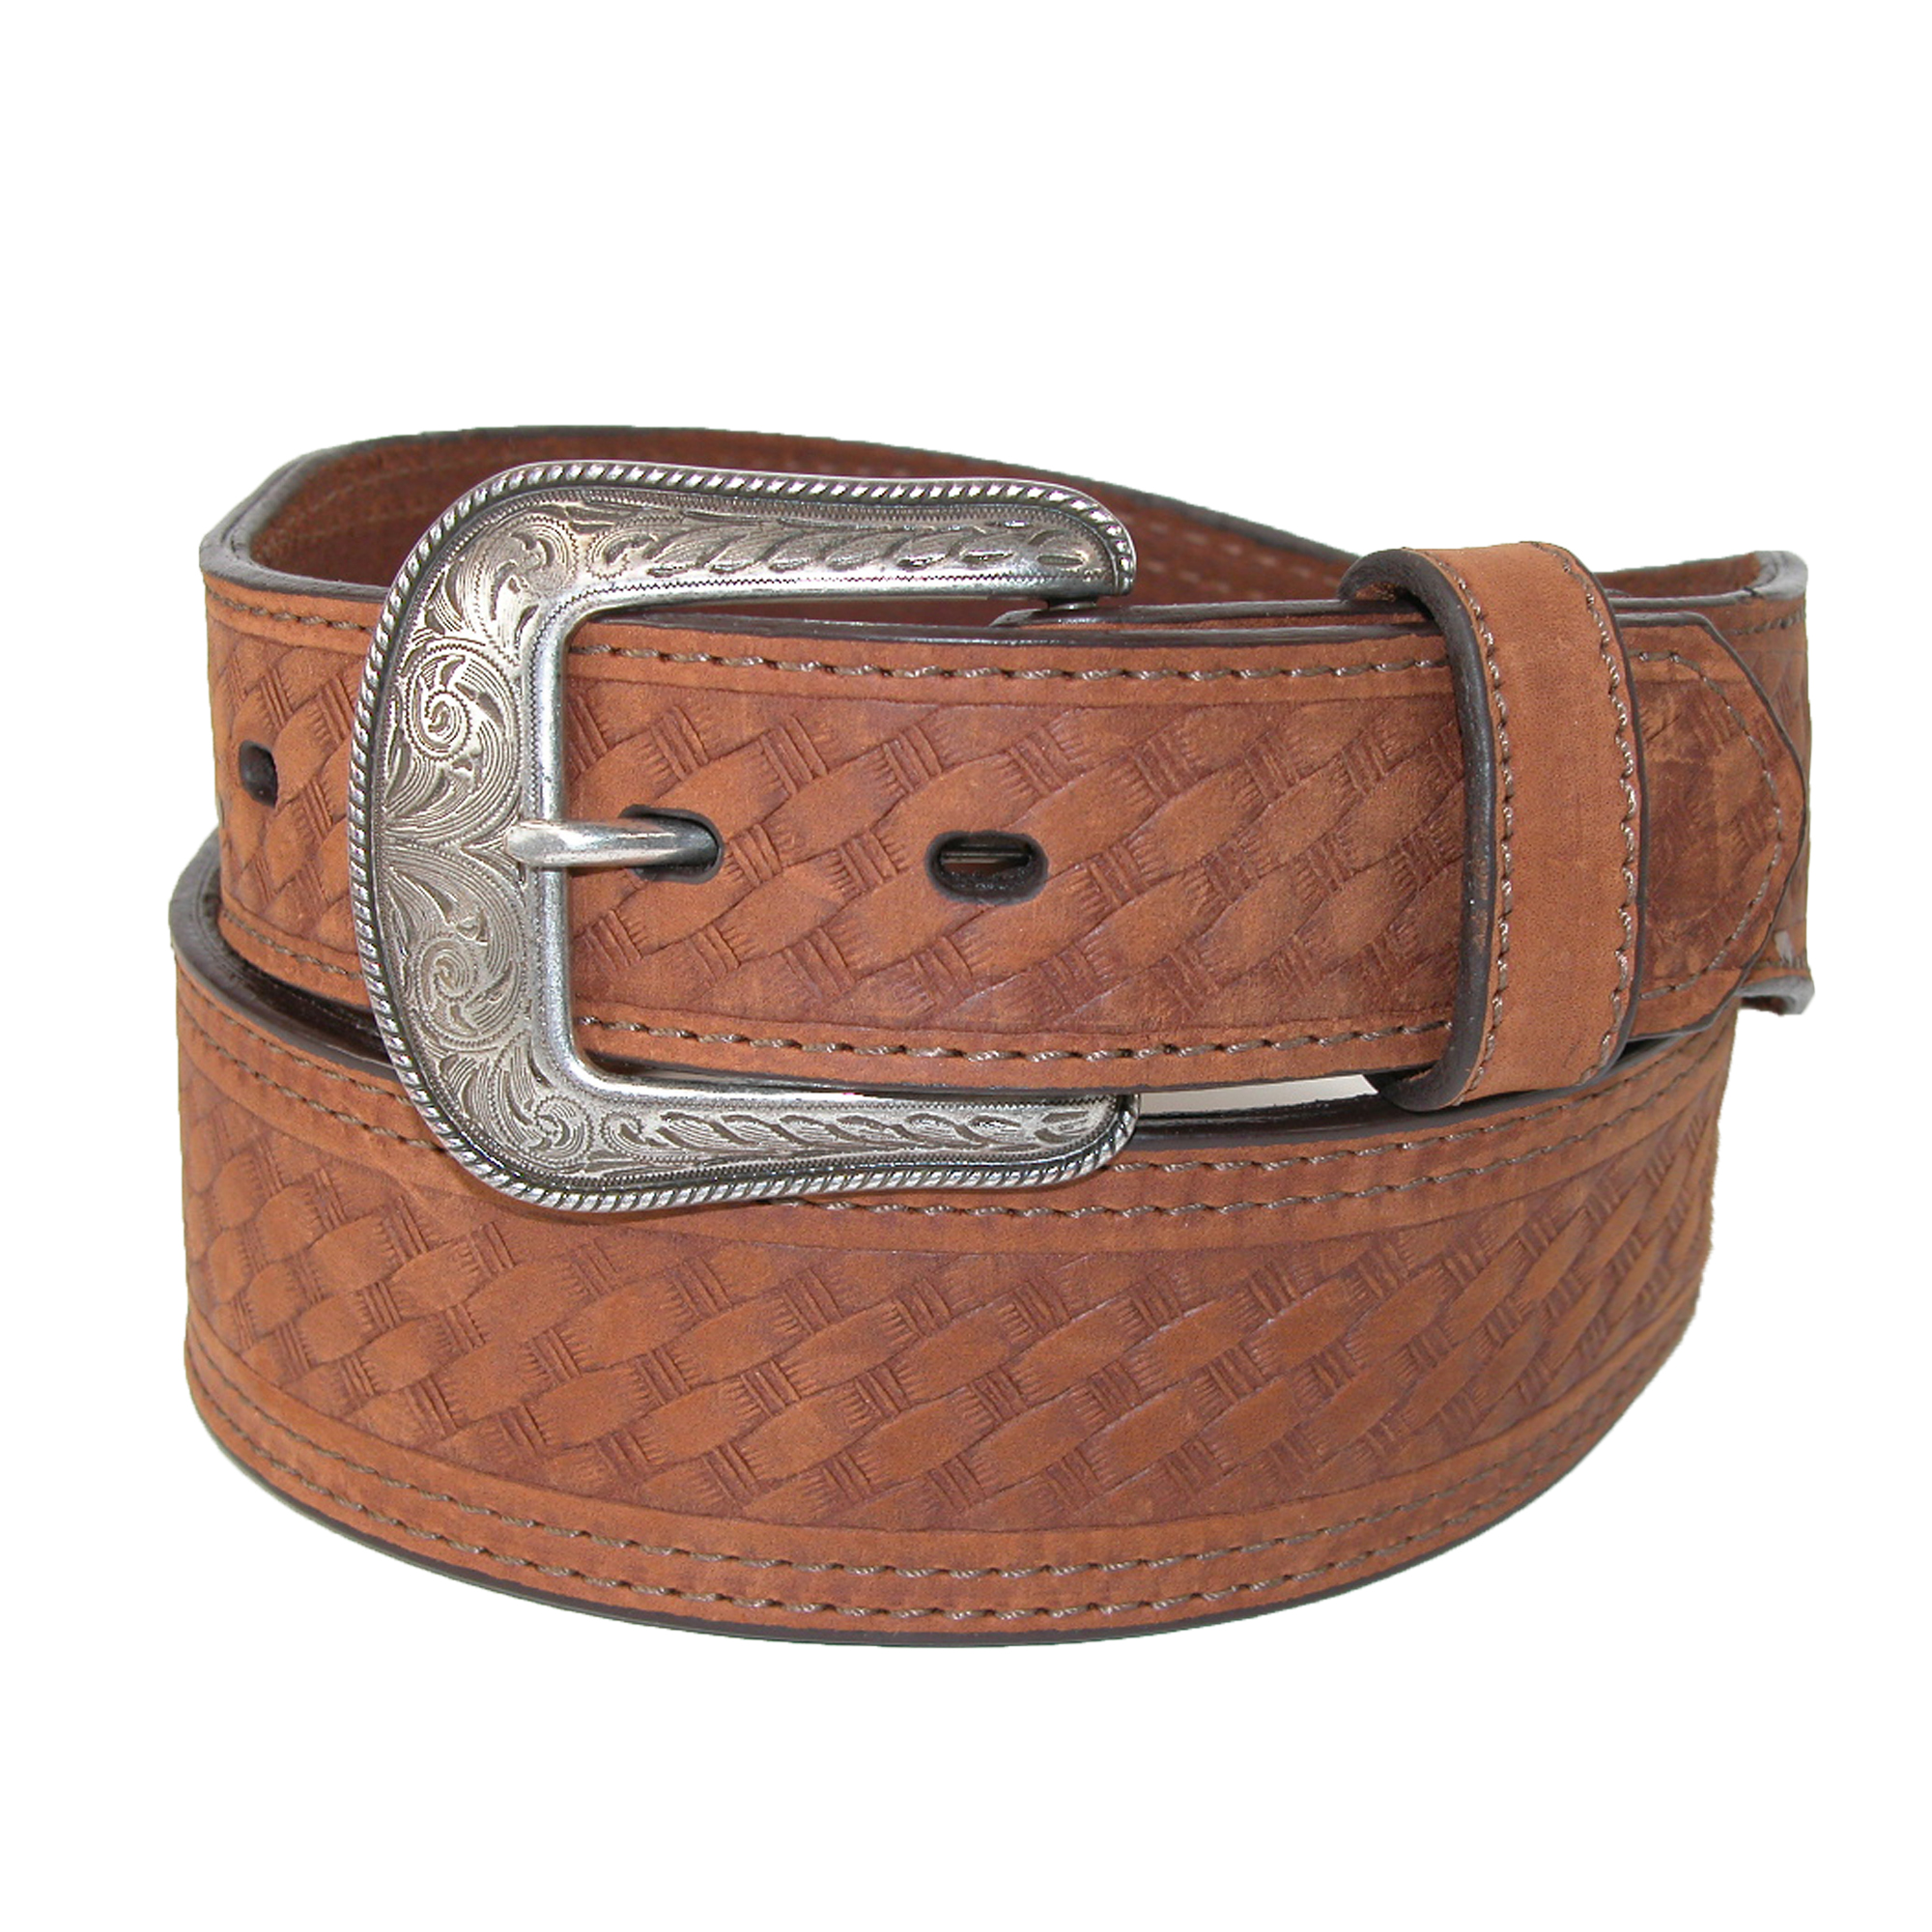 3 D Belt Company  Men's Leather Basketweave Western Belt with Tapered Ends